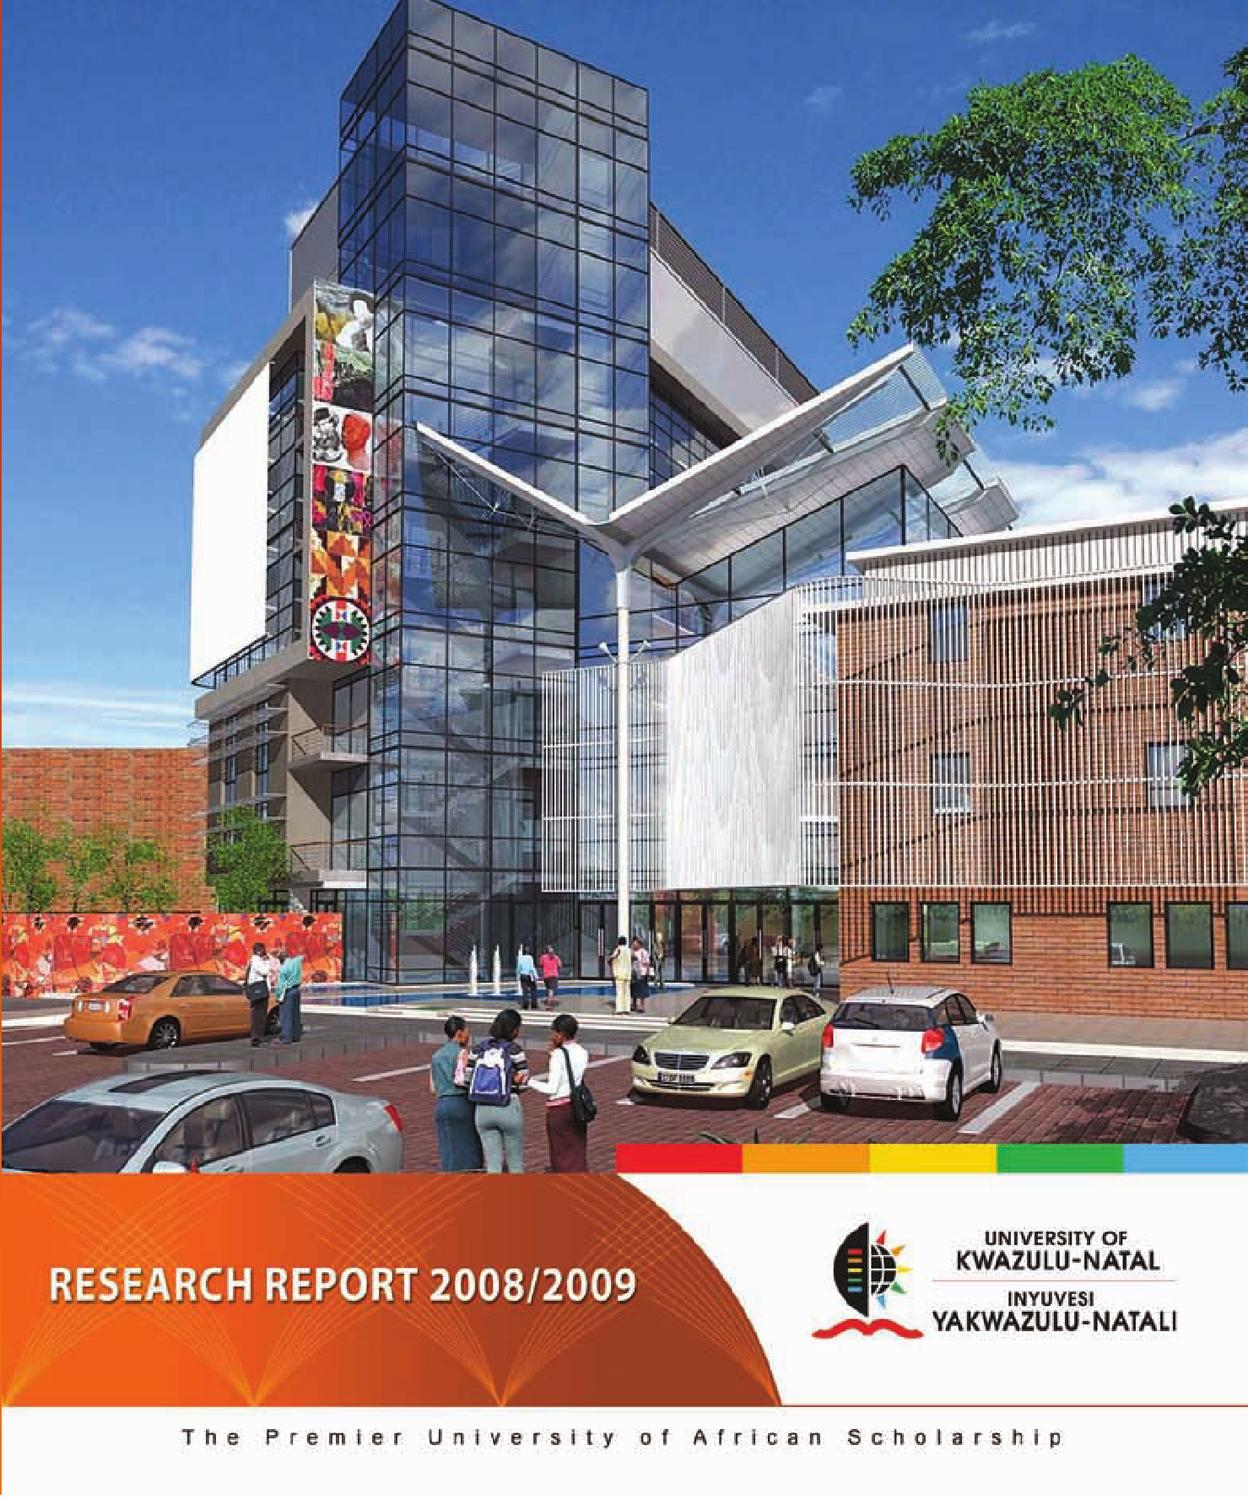 Ukzn research report 20082009 by nitesh ramsaroop issuu fandeluxe Image collections